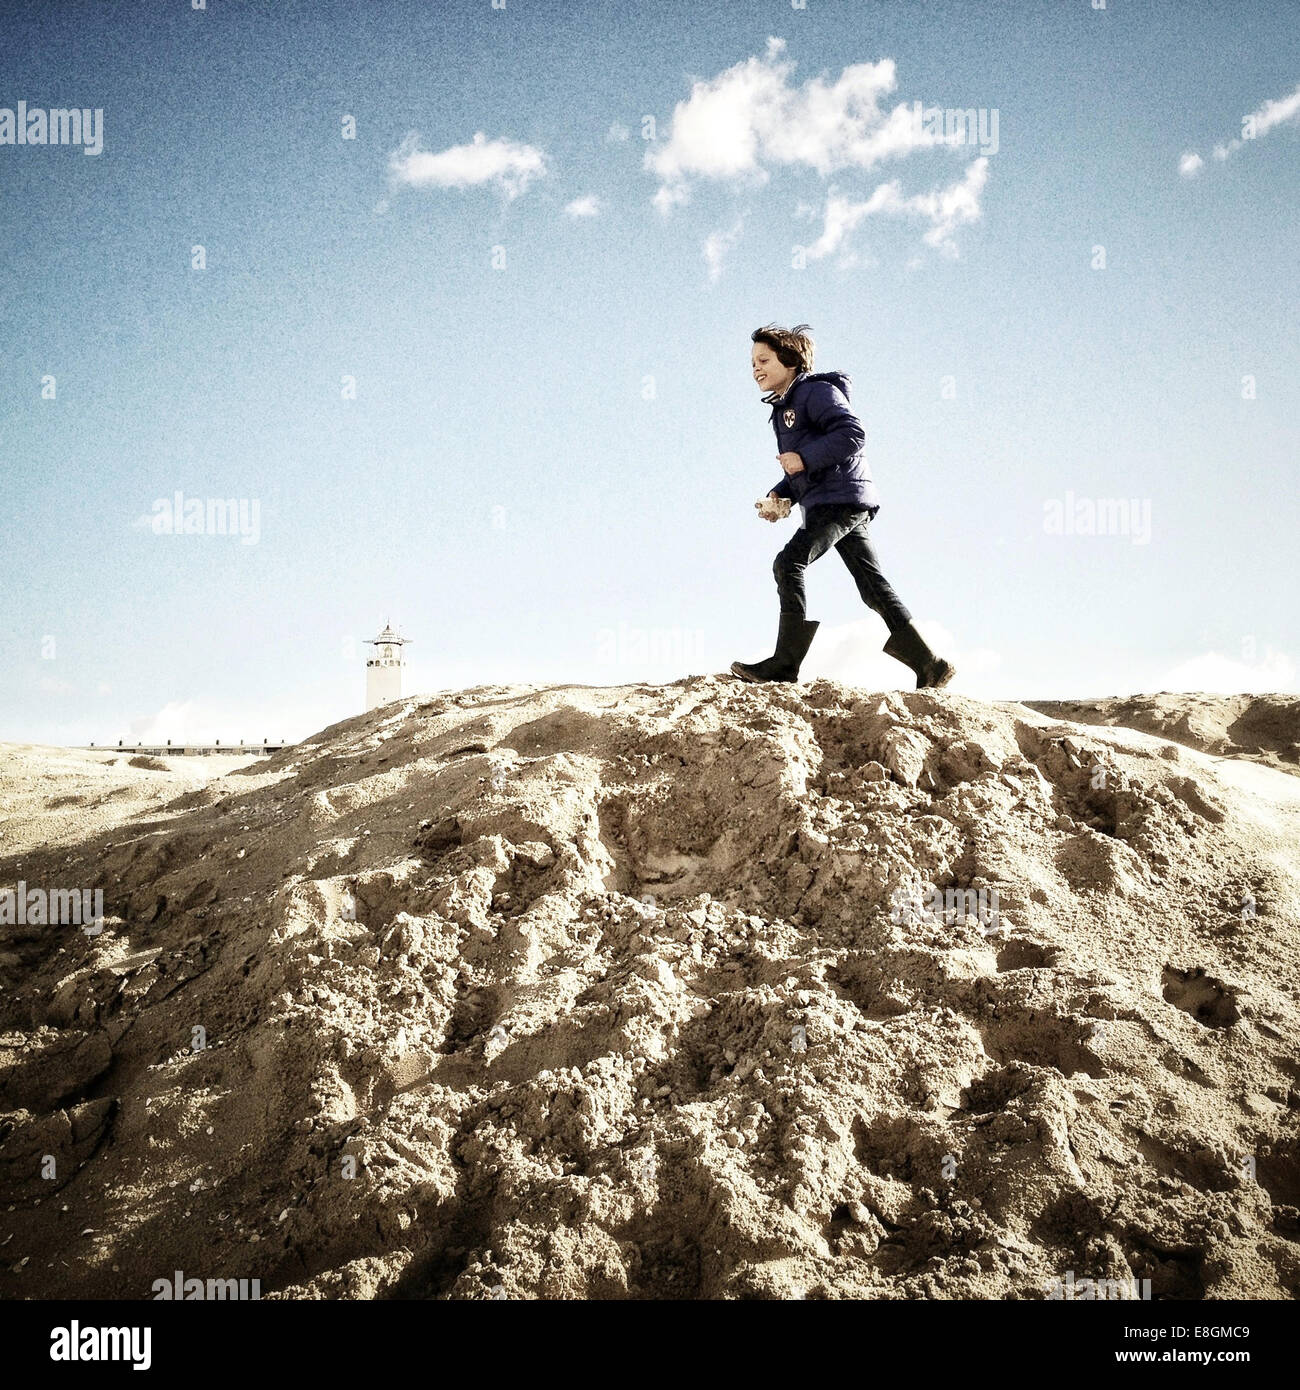 Boy running on sand dune Photo Stock